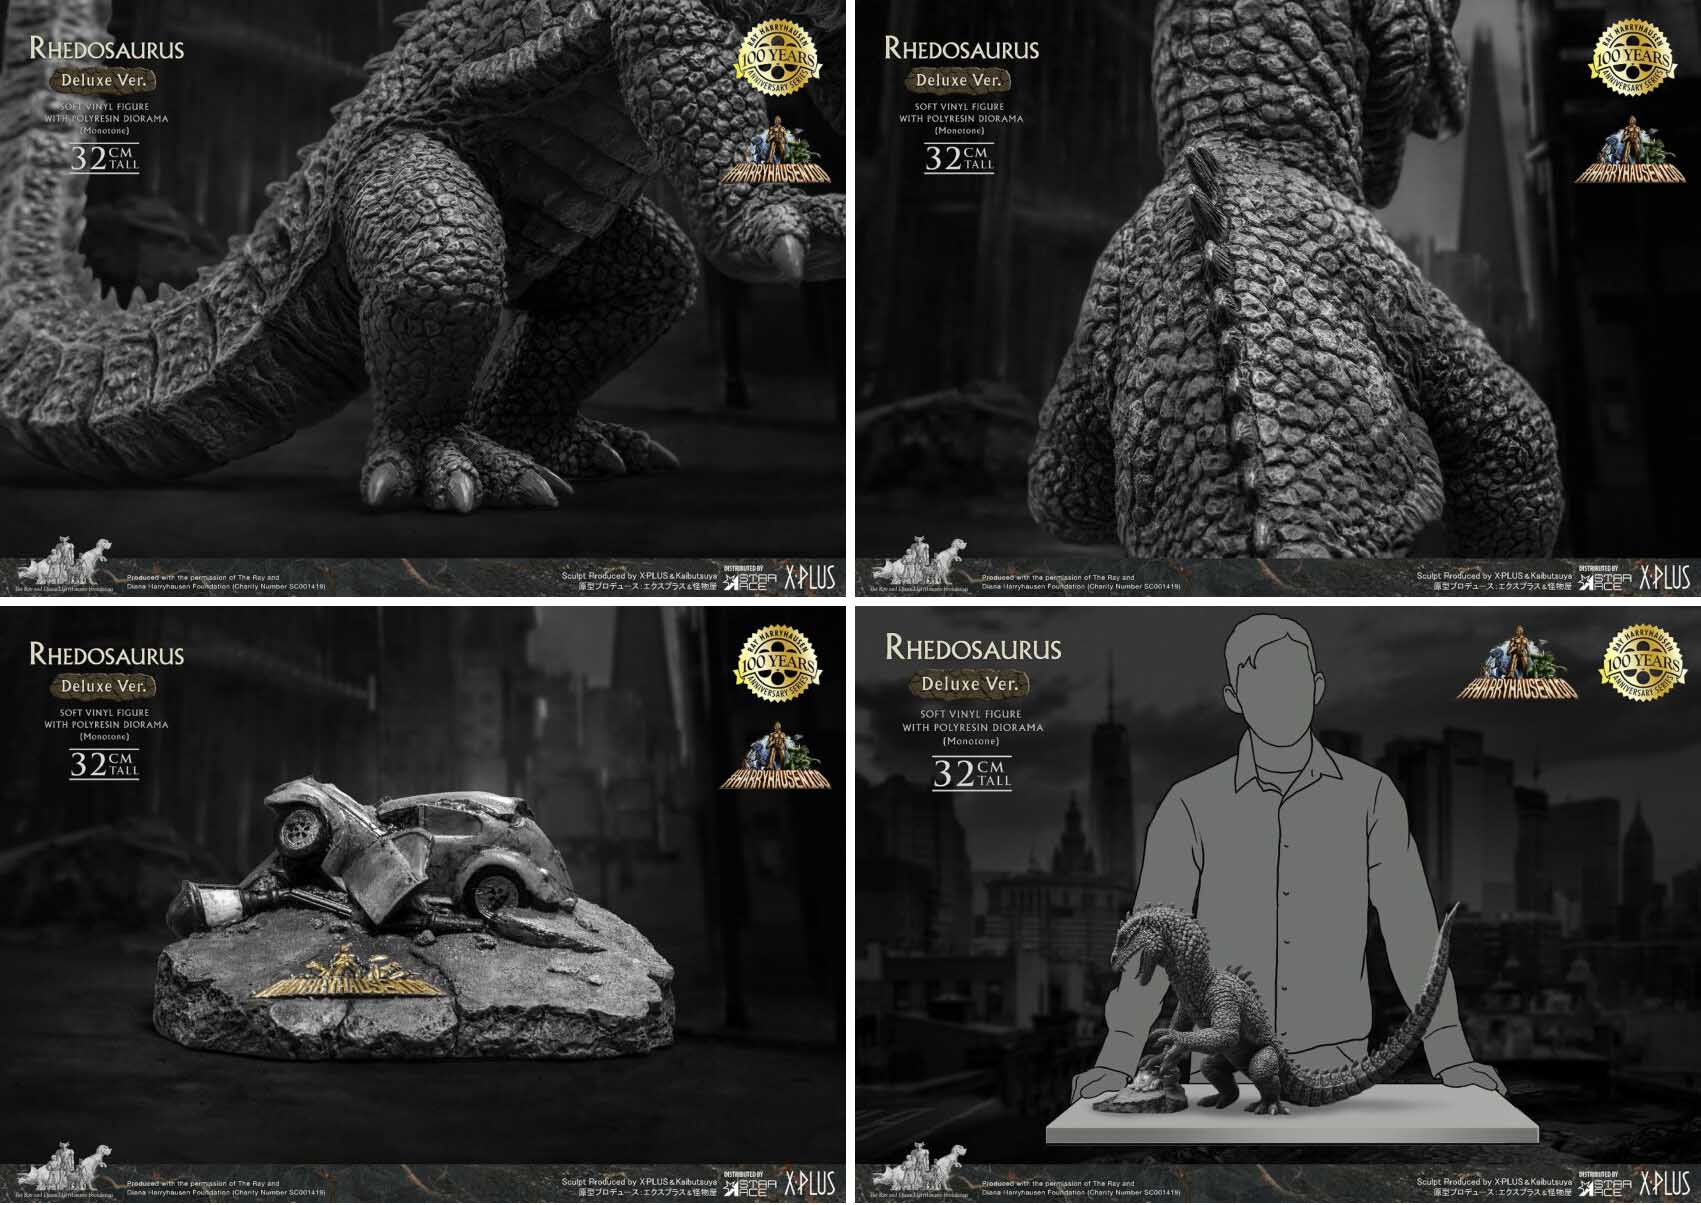 STAR ACE THE BEAST FROM 20,000 FATHOMS RHEDOSAURUS SOFT VINYL STATUE MONOCHROME [DELUXE VERSION]